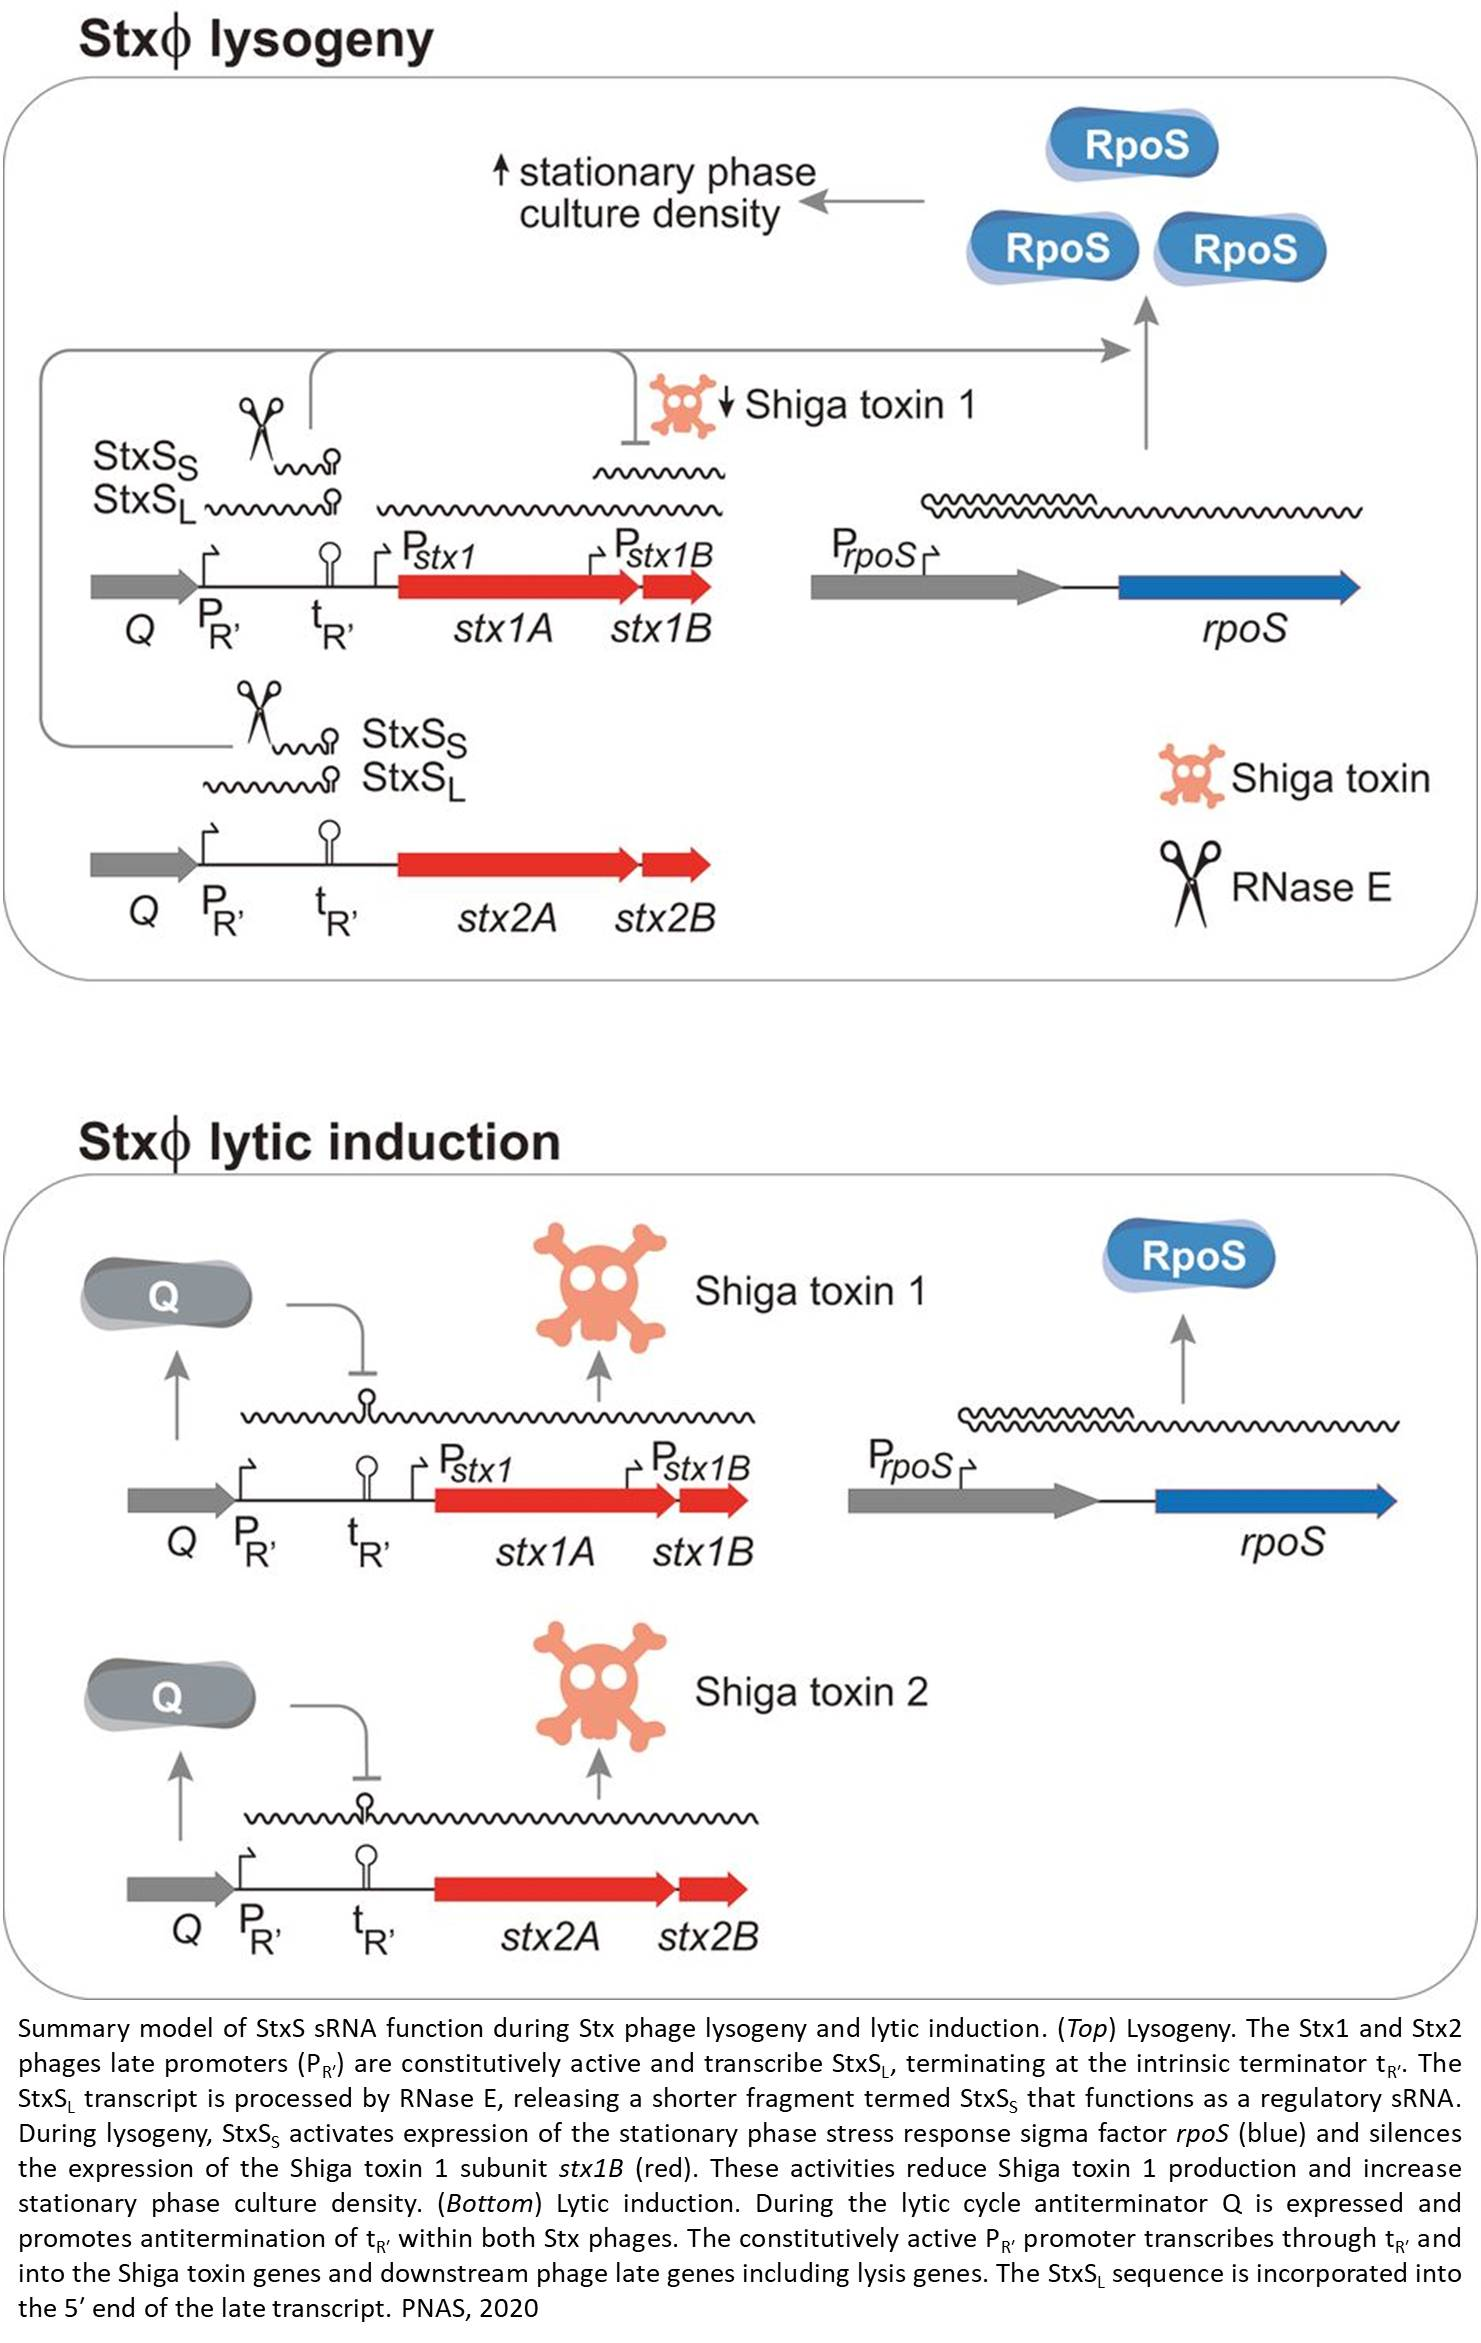 A new pathway regulating E.coli Shiga toxin